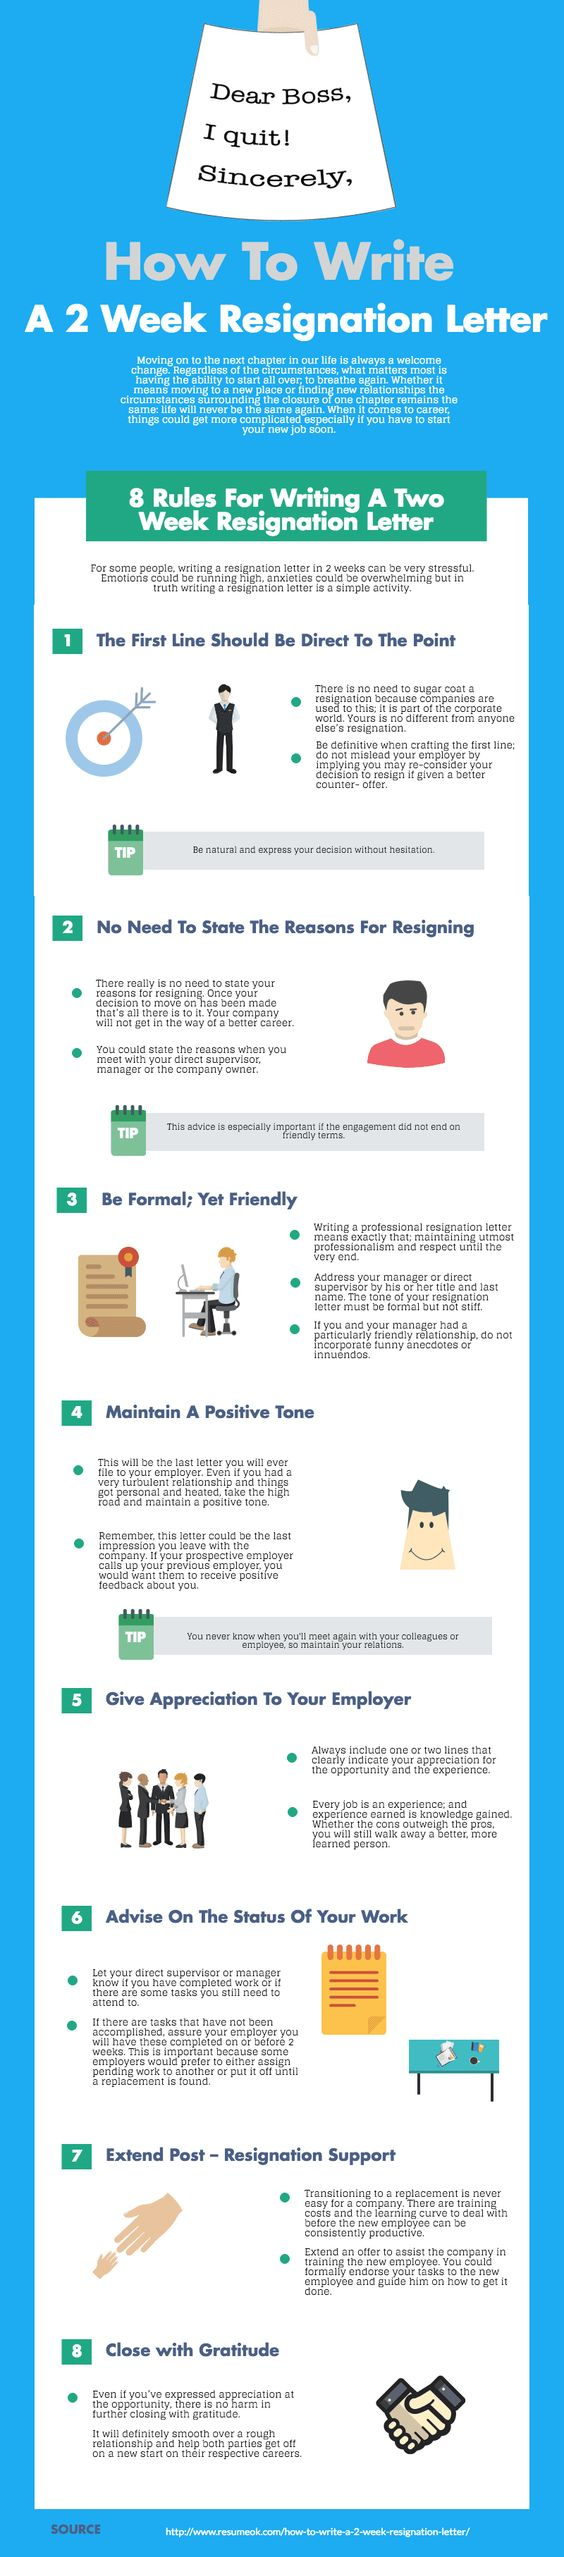 How To Write A 2 Week Resignation Letter infographic